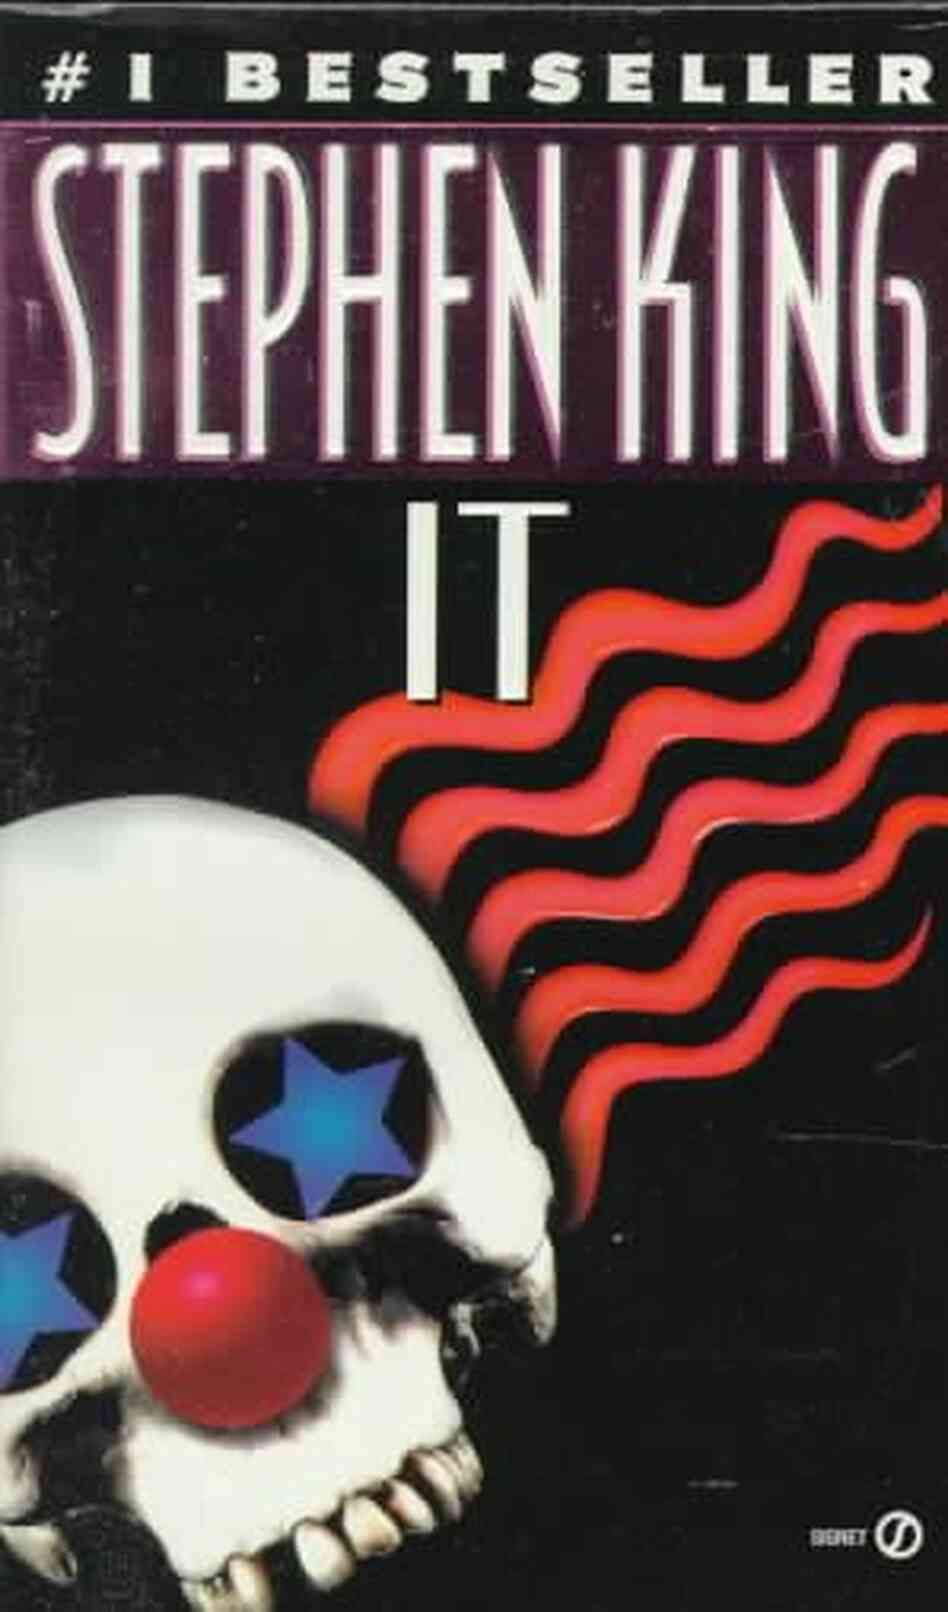 Carrie Libro Stephen King : Npr